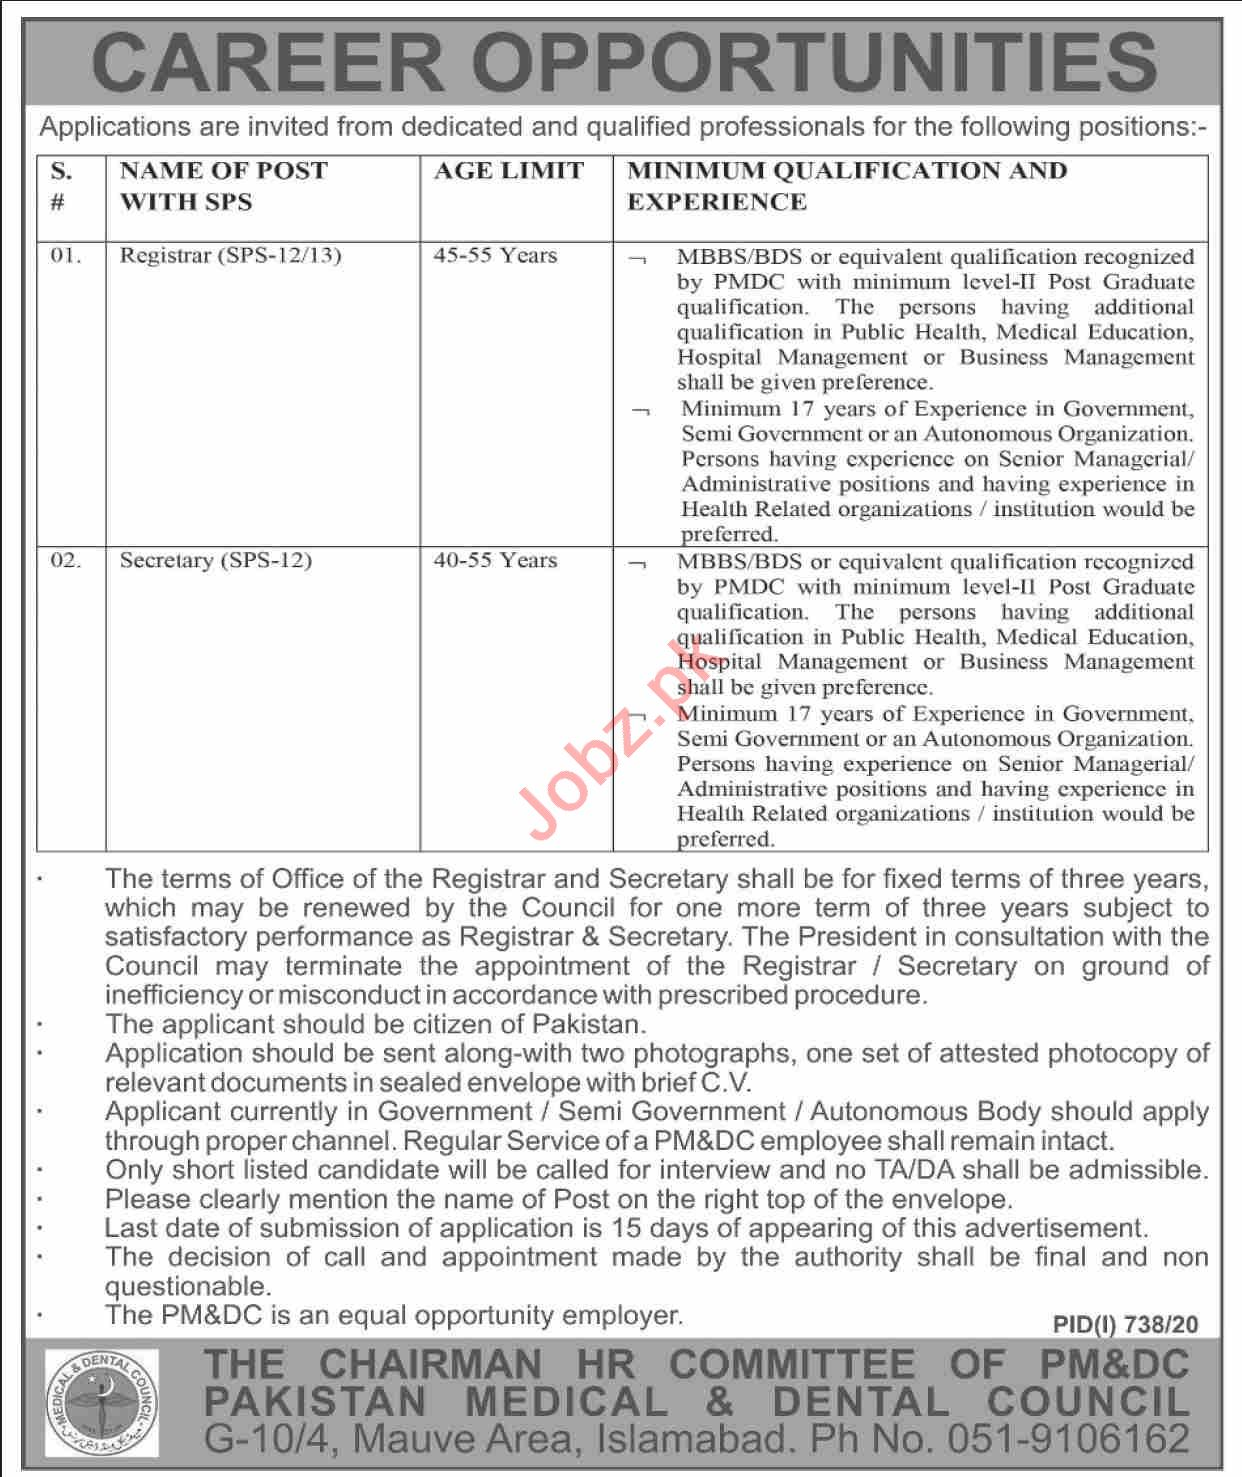 PMDC Islamabad Jobs 2020 for Registrar & Secretary